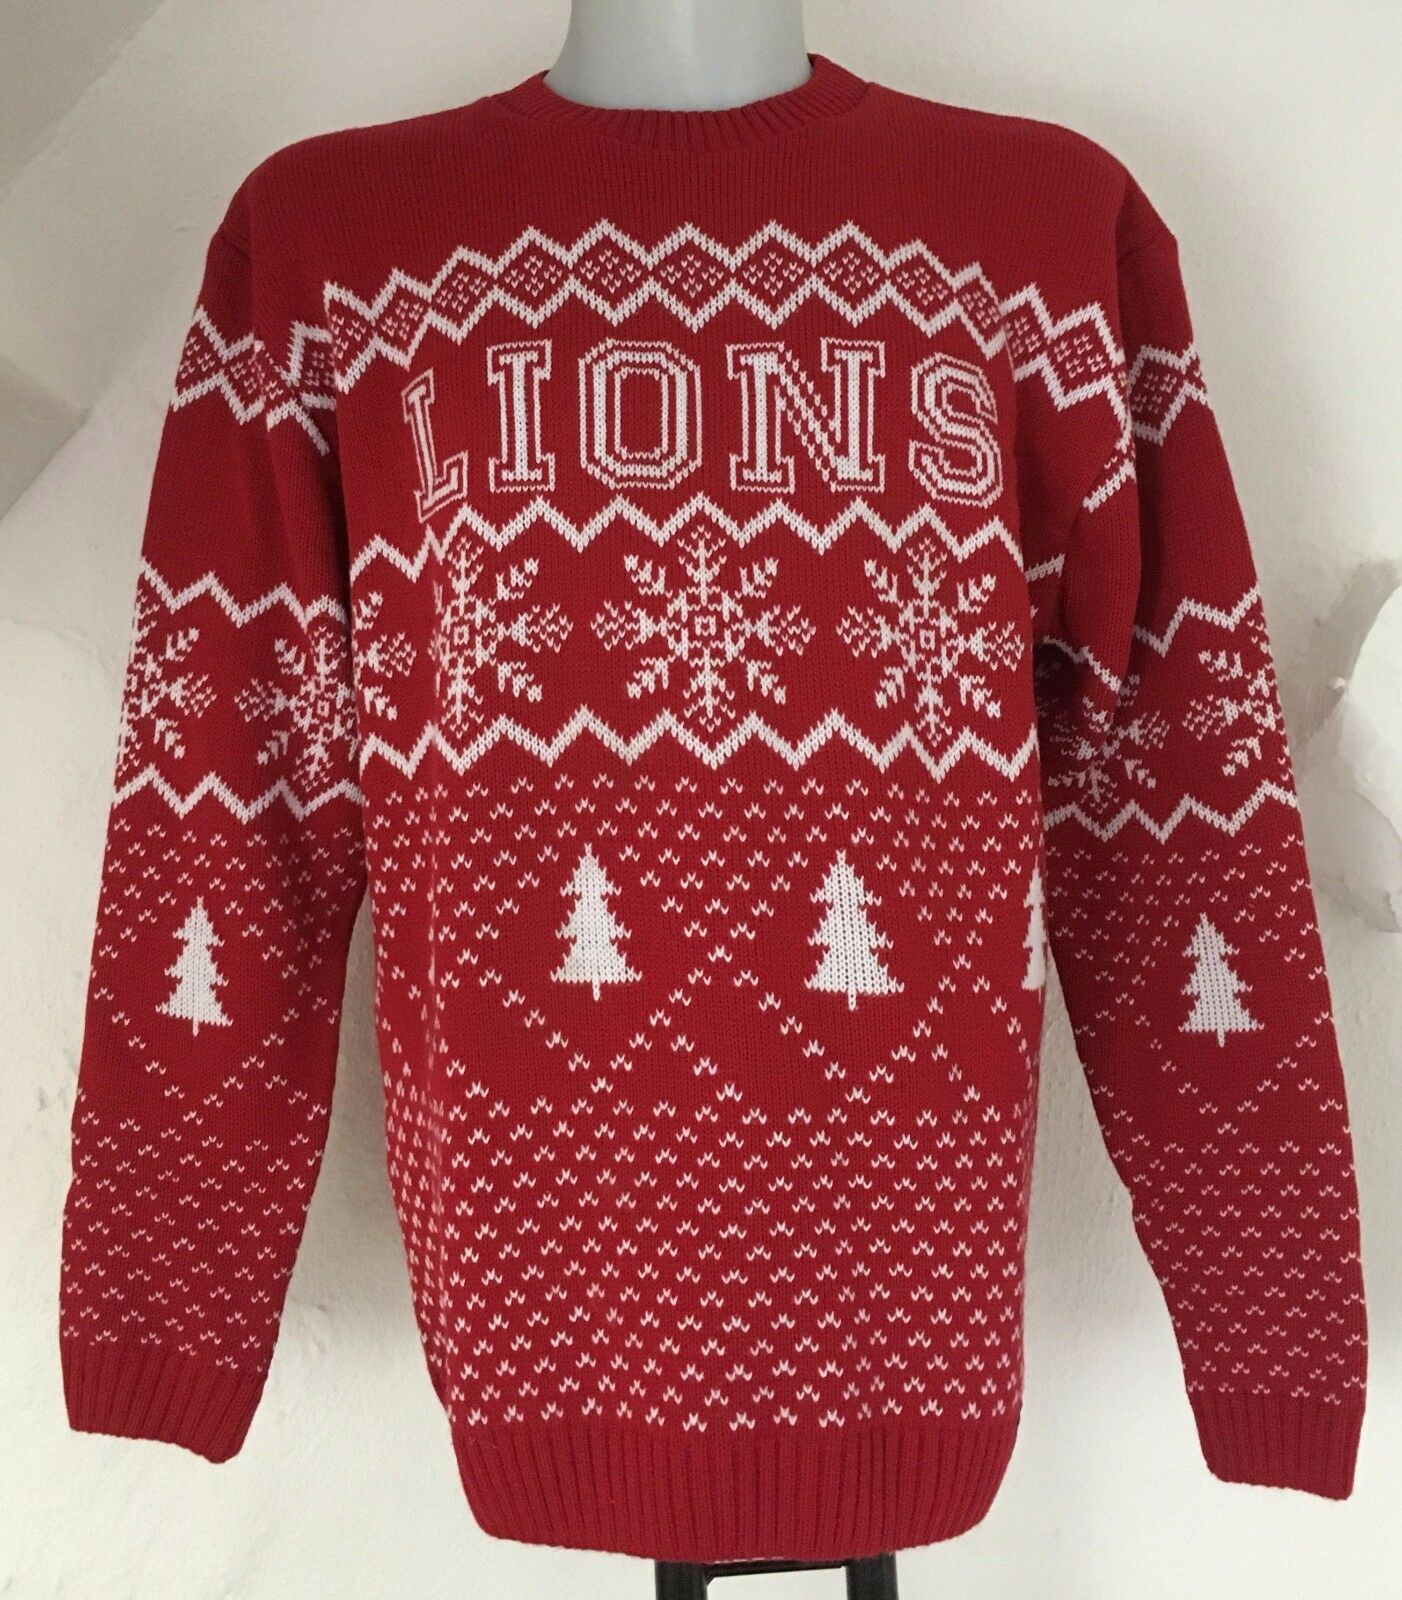 BRITISH AND IRISH LIONS CHRISTMAS JUMPER BY SPORTFOLIO SIZE MEN'S XXL BRAND NEW